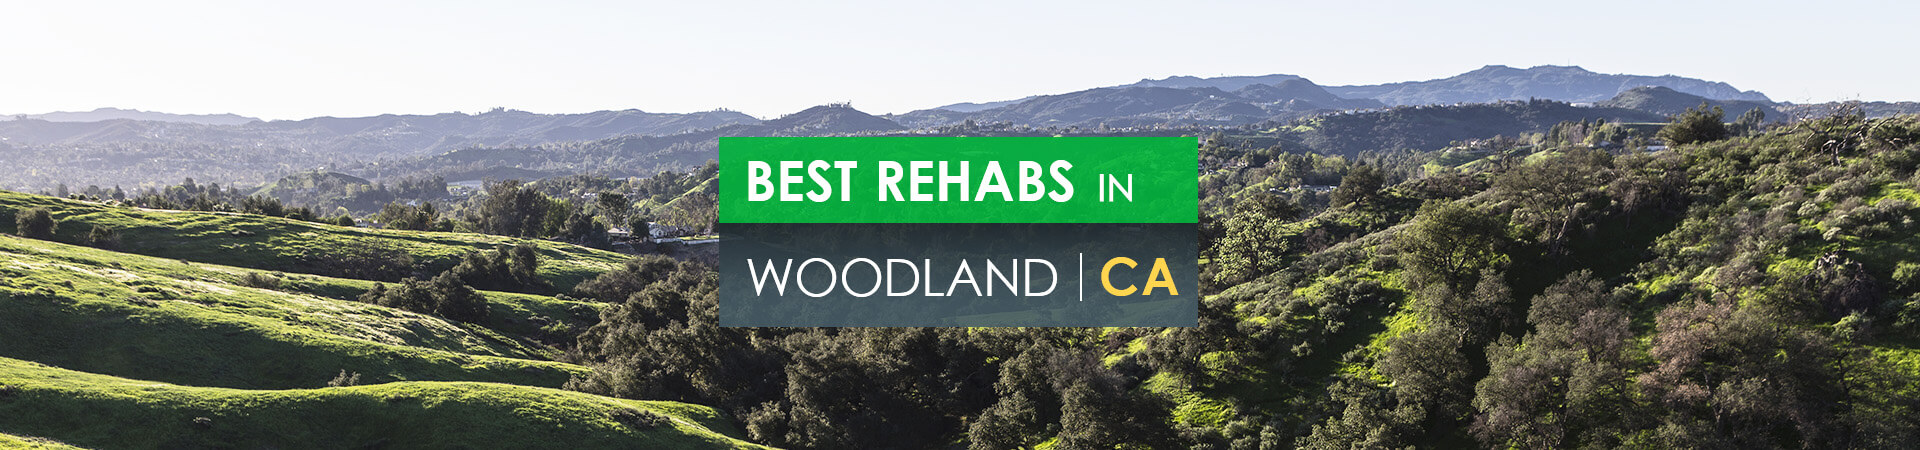 Best rehabs in Woodland, CA